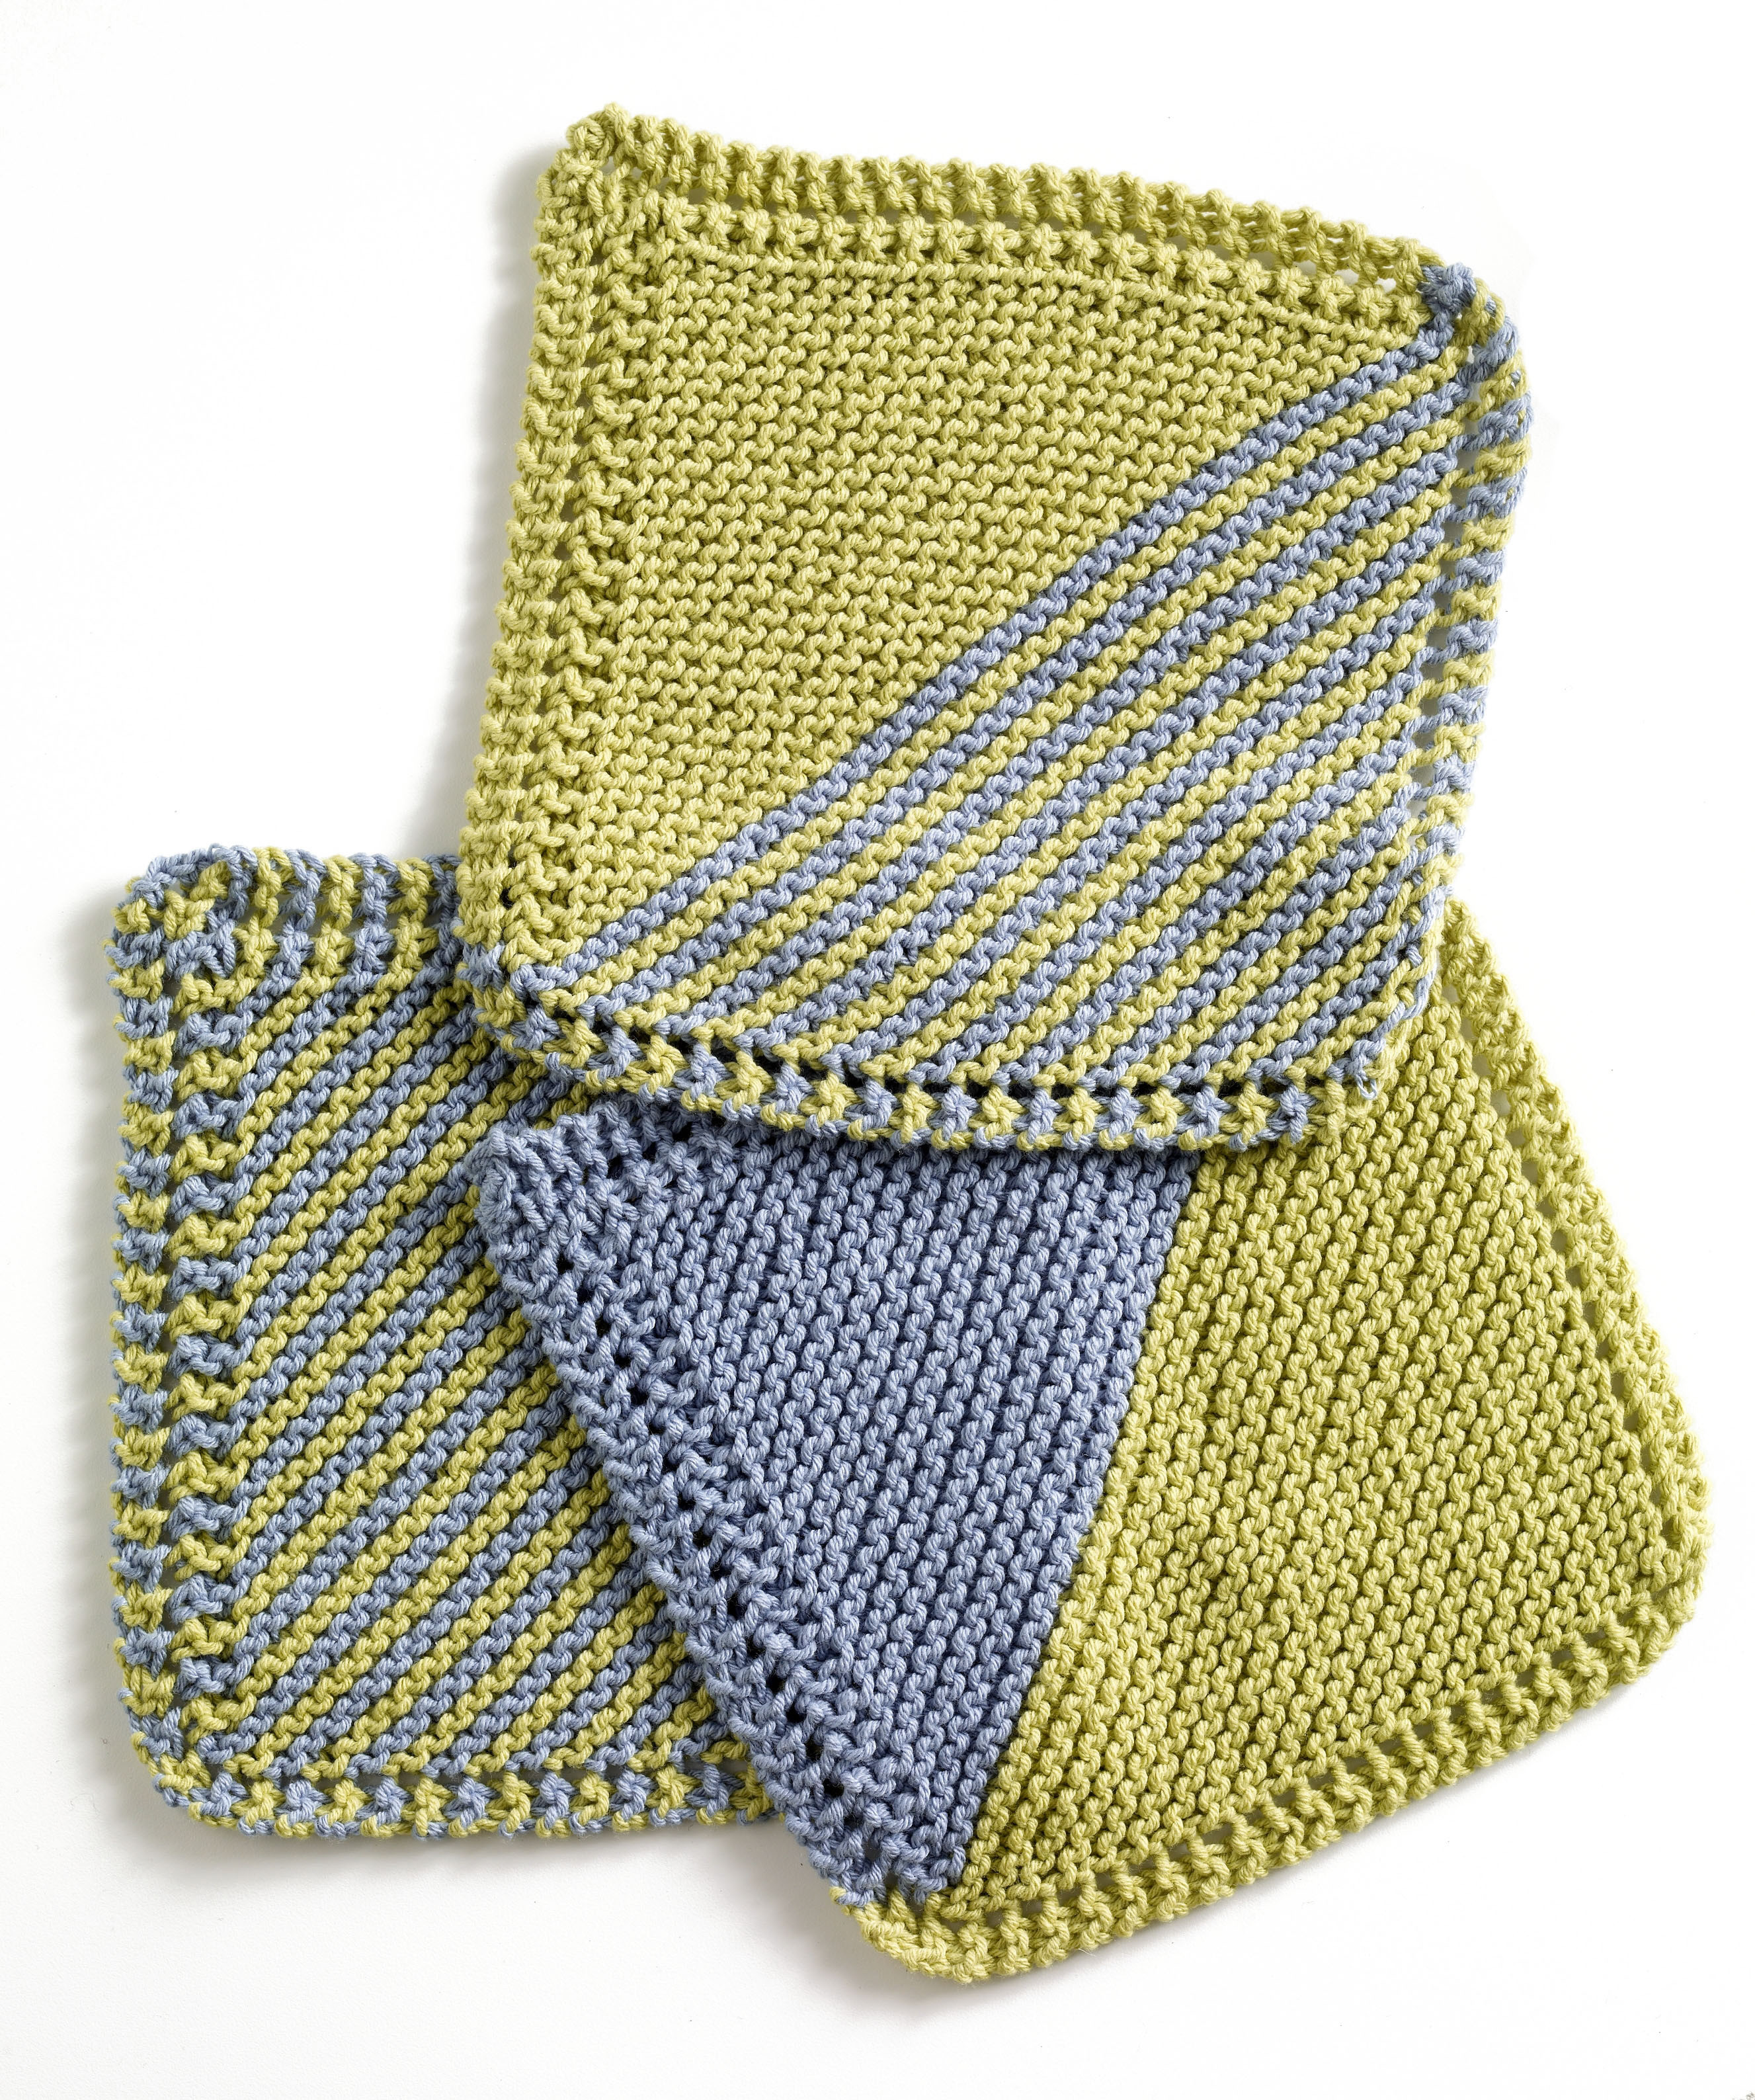 Best Of Garter Square Washcloths In Lion Brand Cotton Ease Knitted Square Patterns Of Lovely 50 Models Knitted Square Patterns